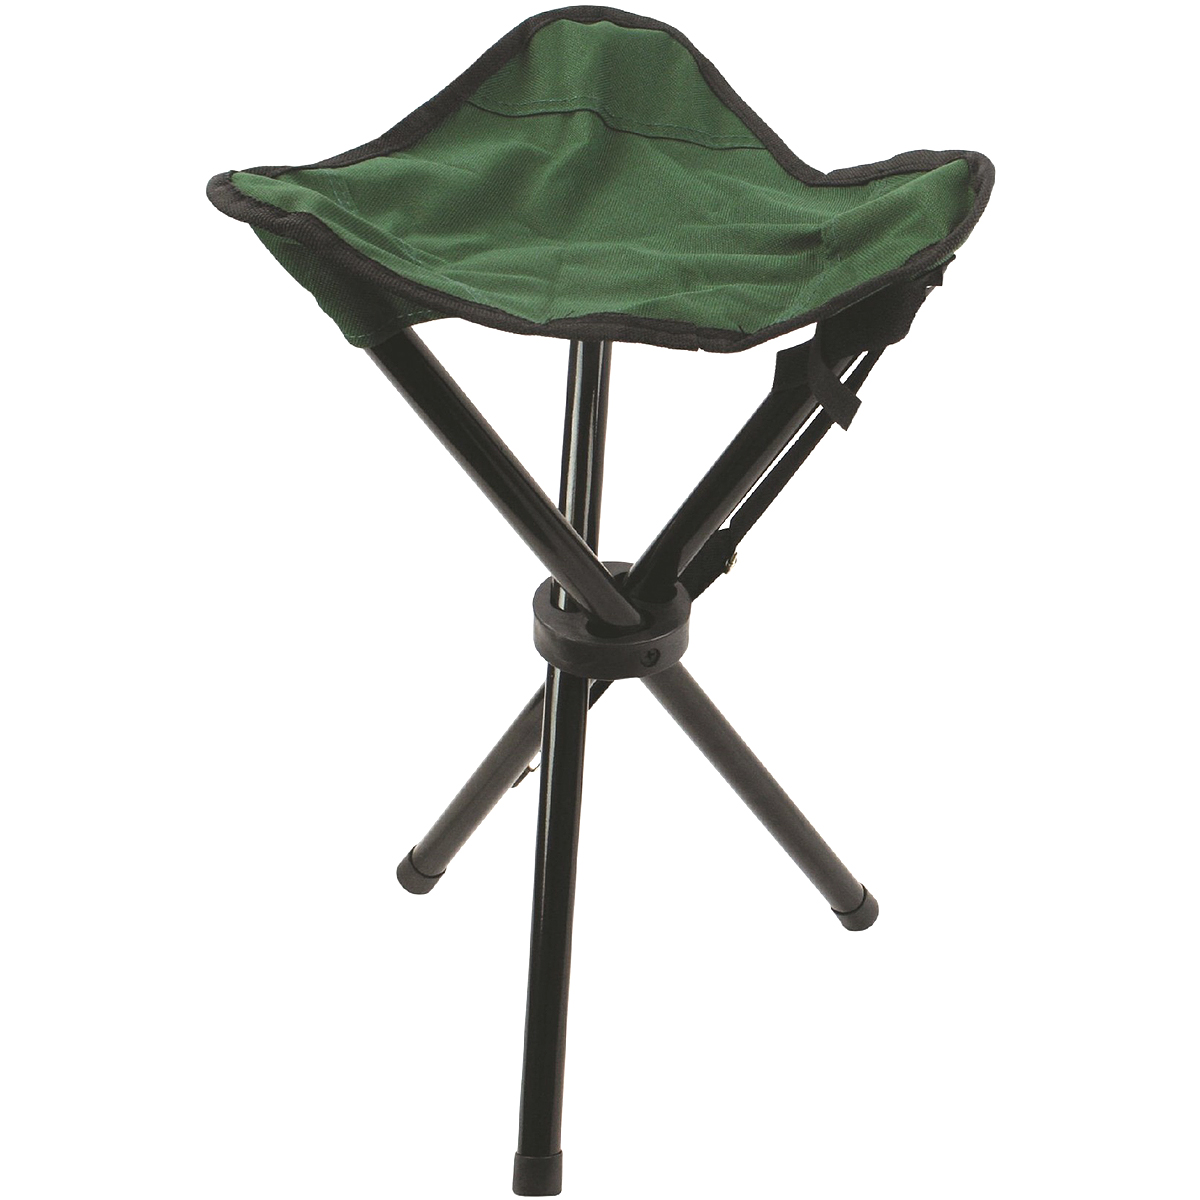 Details about Highlander Folding 3 Leg Steel Tripod Stool Camping Festival  Fishing Chair Green ed995bf9379c8